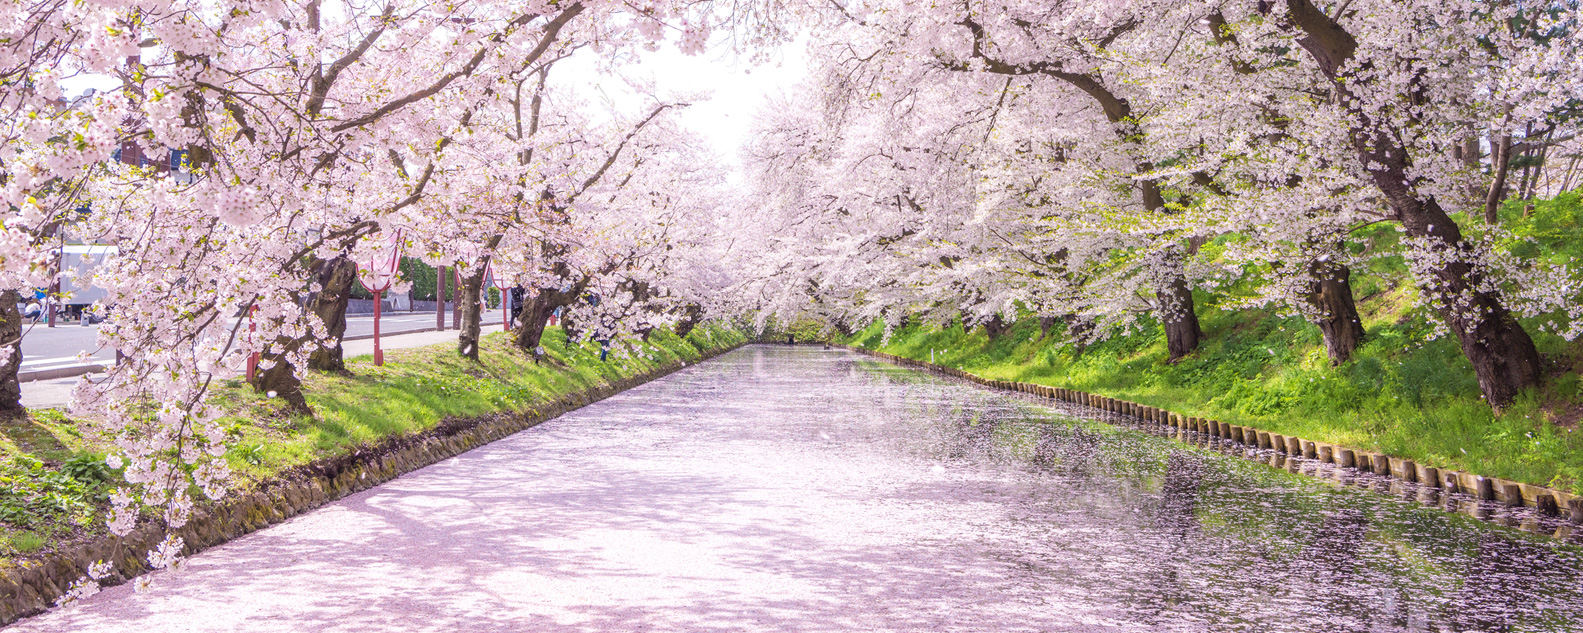 What to Do During Spring in Japan